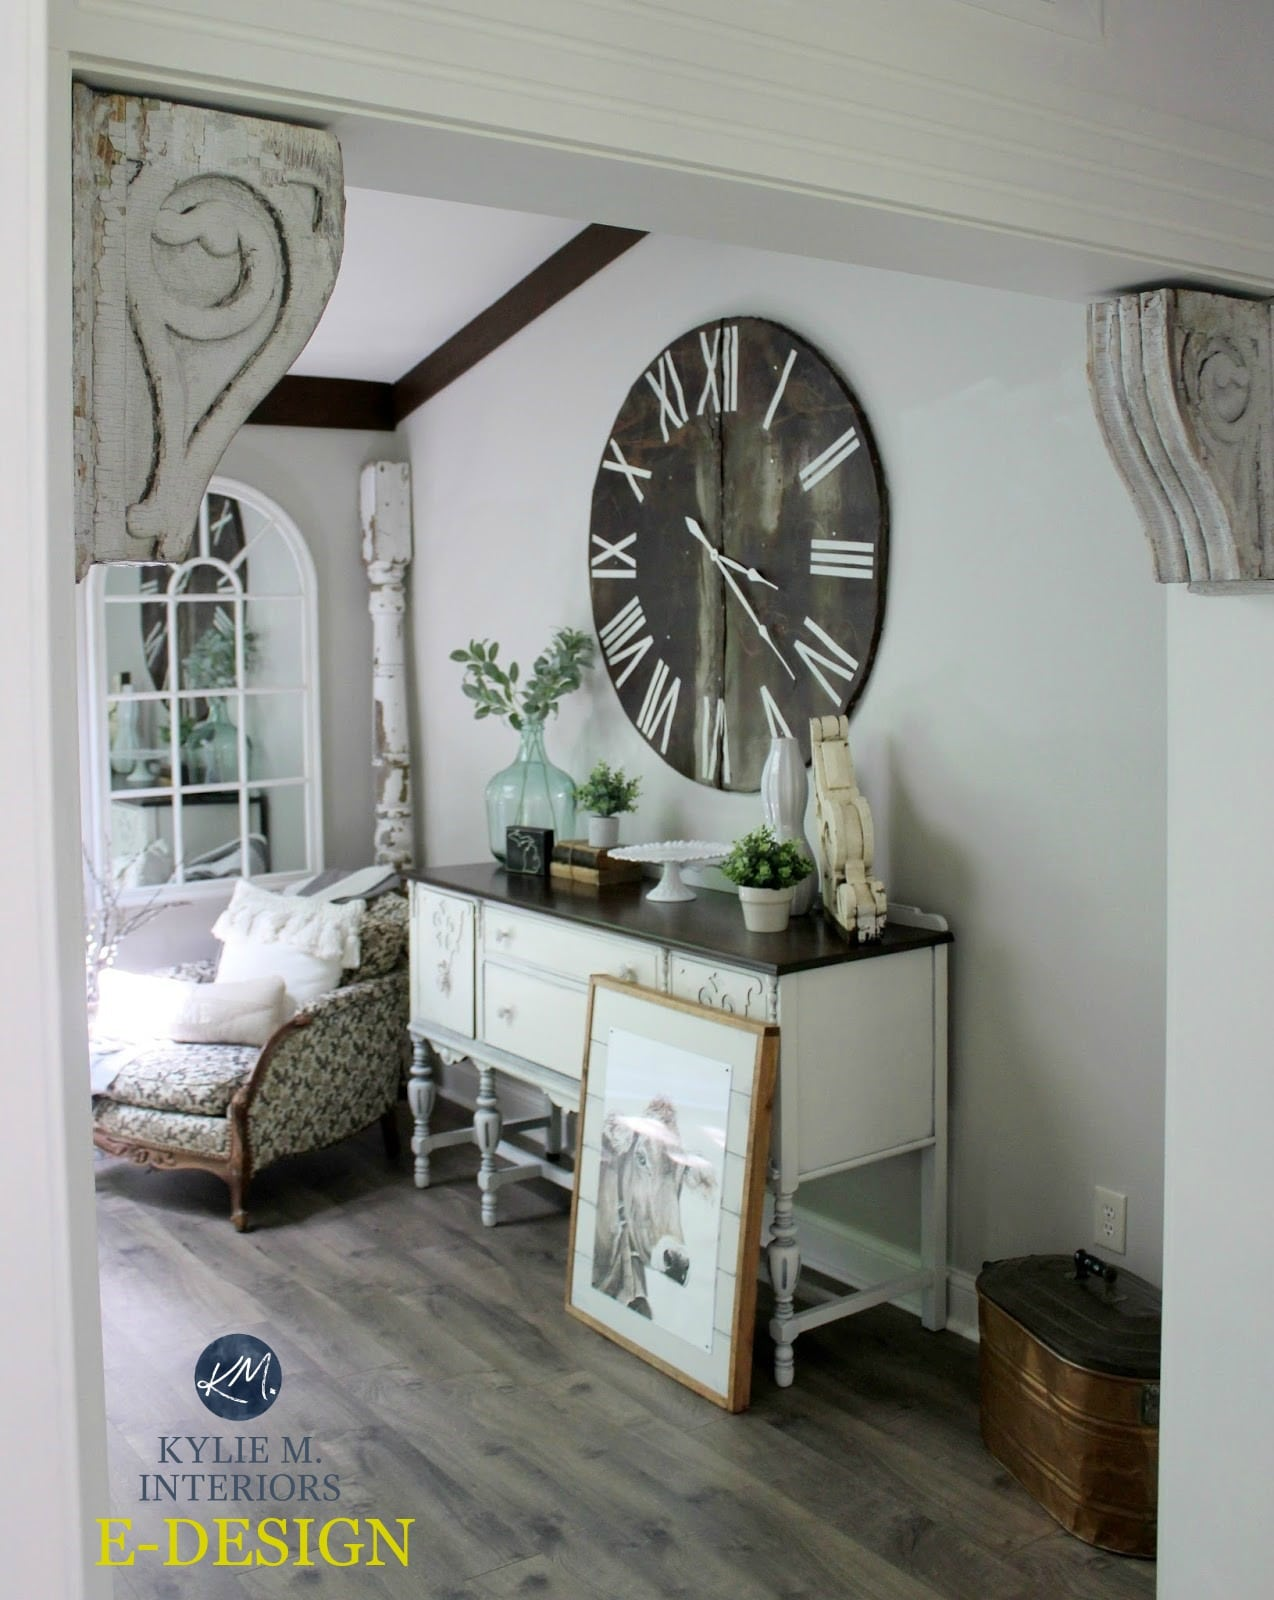 Sherwin Williams Agreeable Gray farmhouse style dining room with decor Kylie M E-design